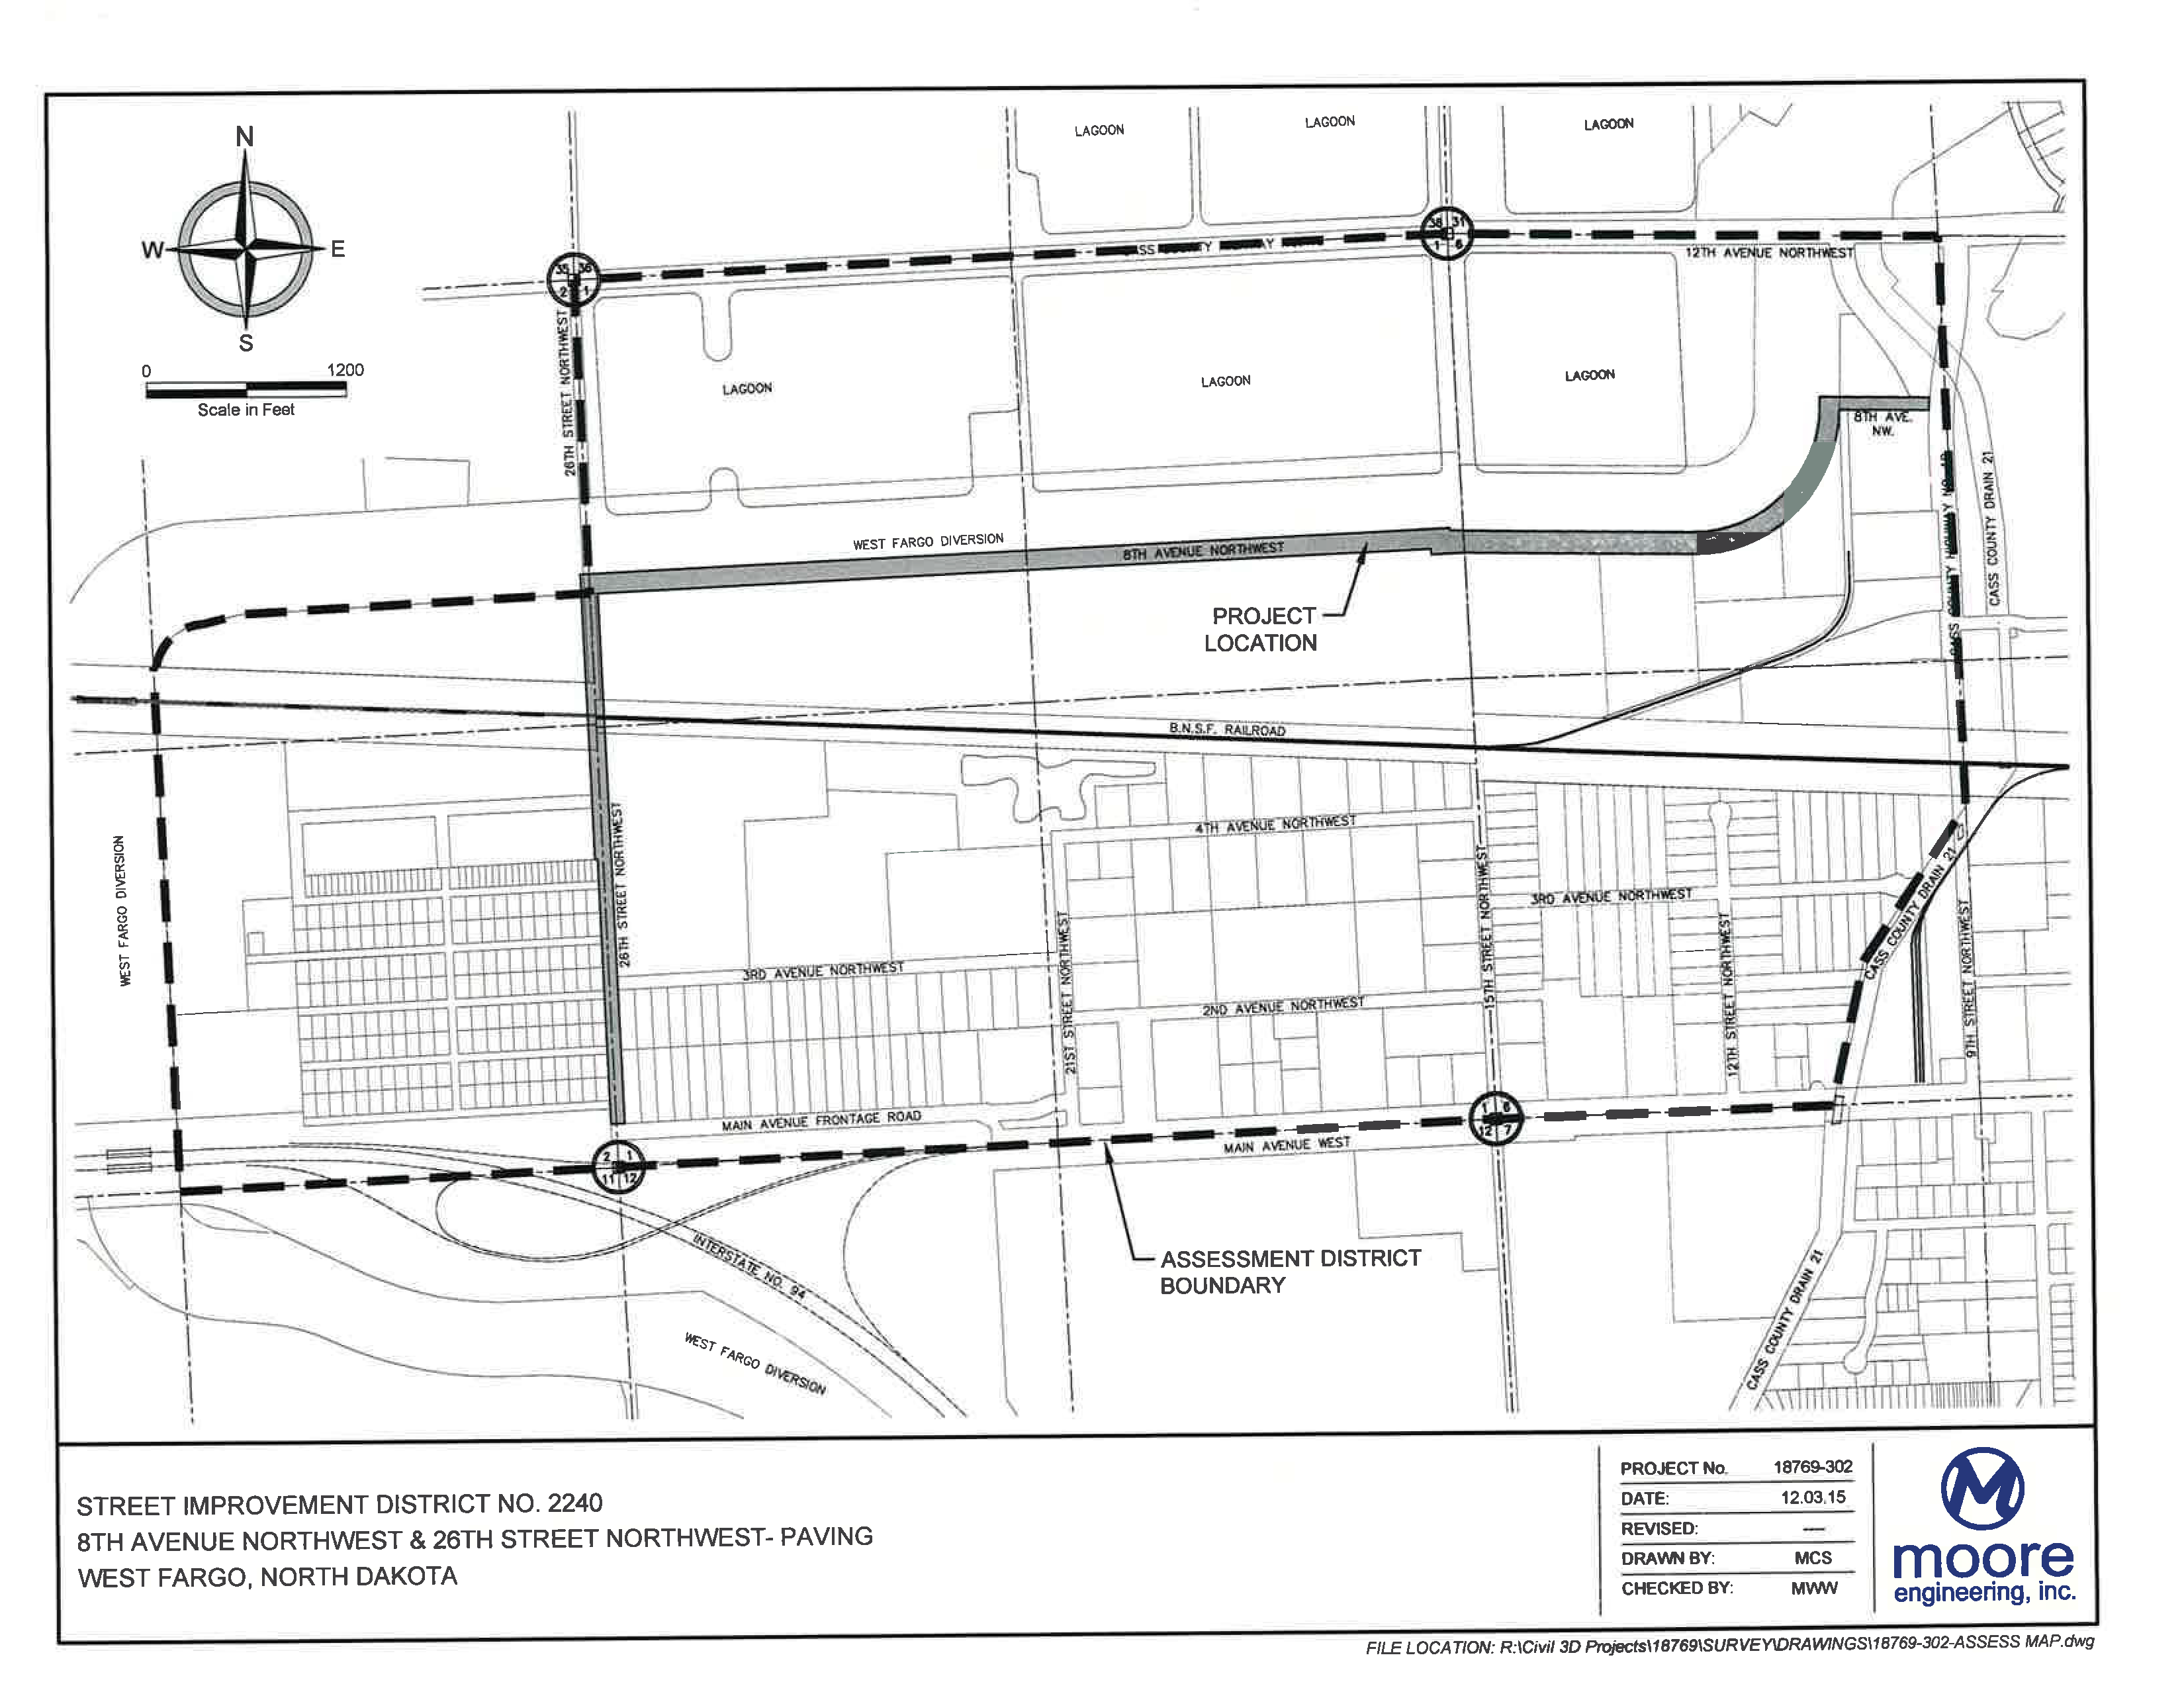 District No. 2240 Eight Avenue NW and 26th Street NW Paving Assessment District Boundary Map